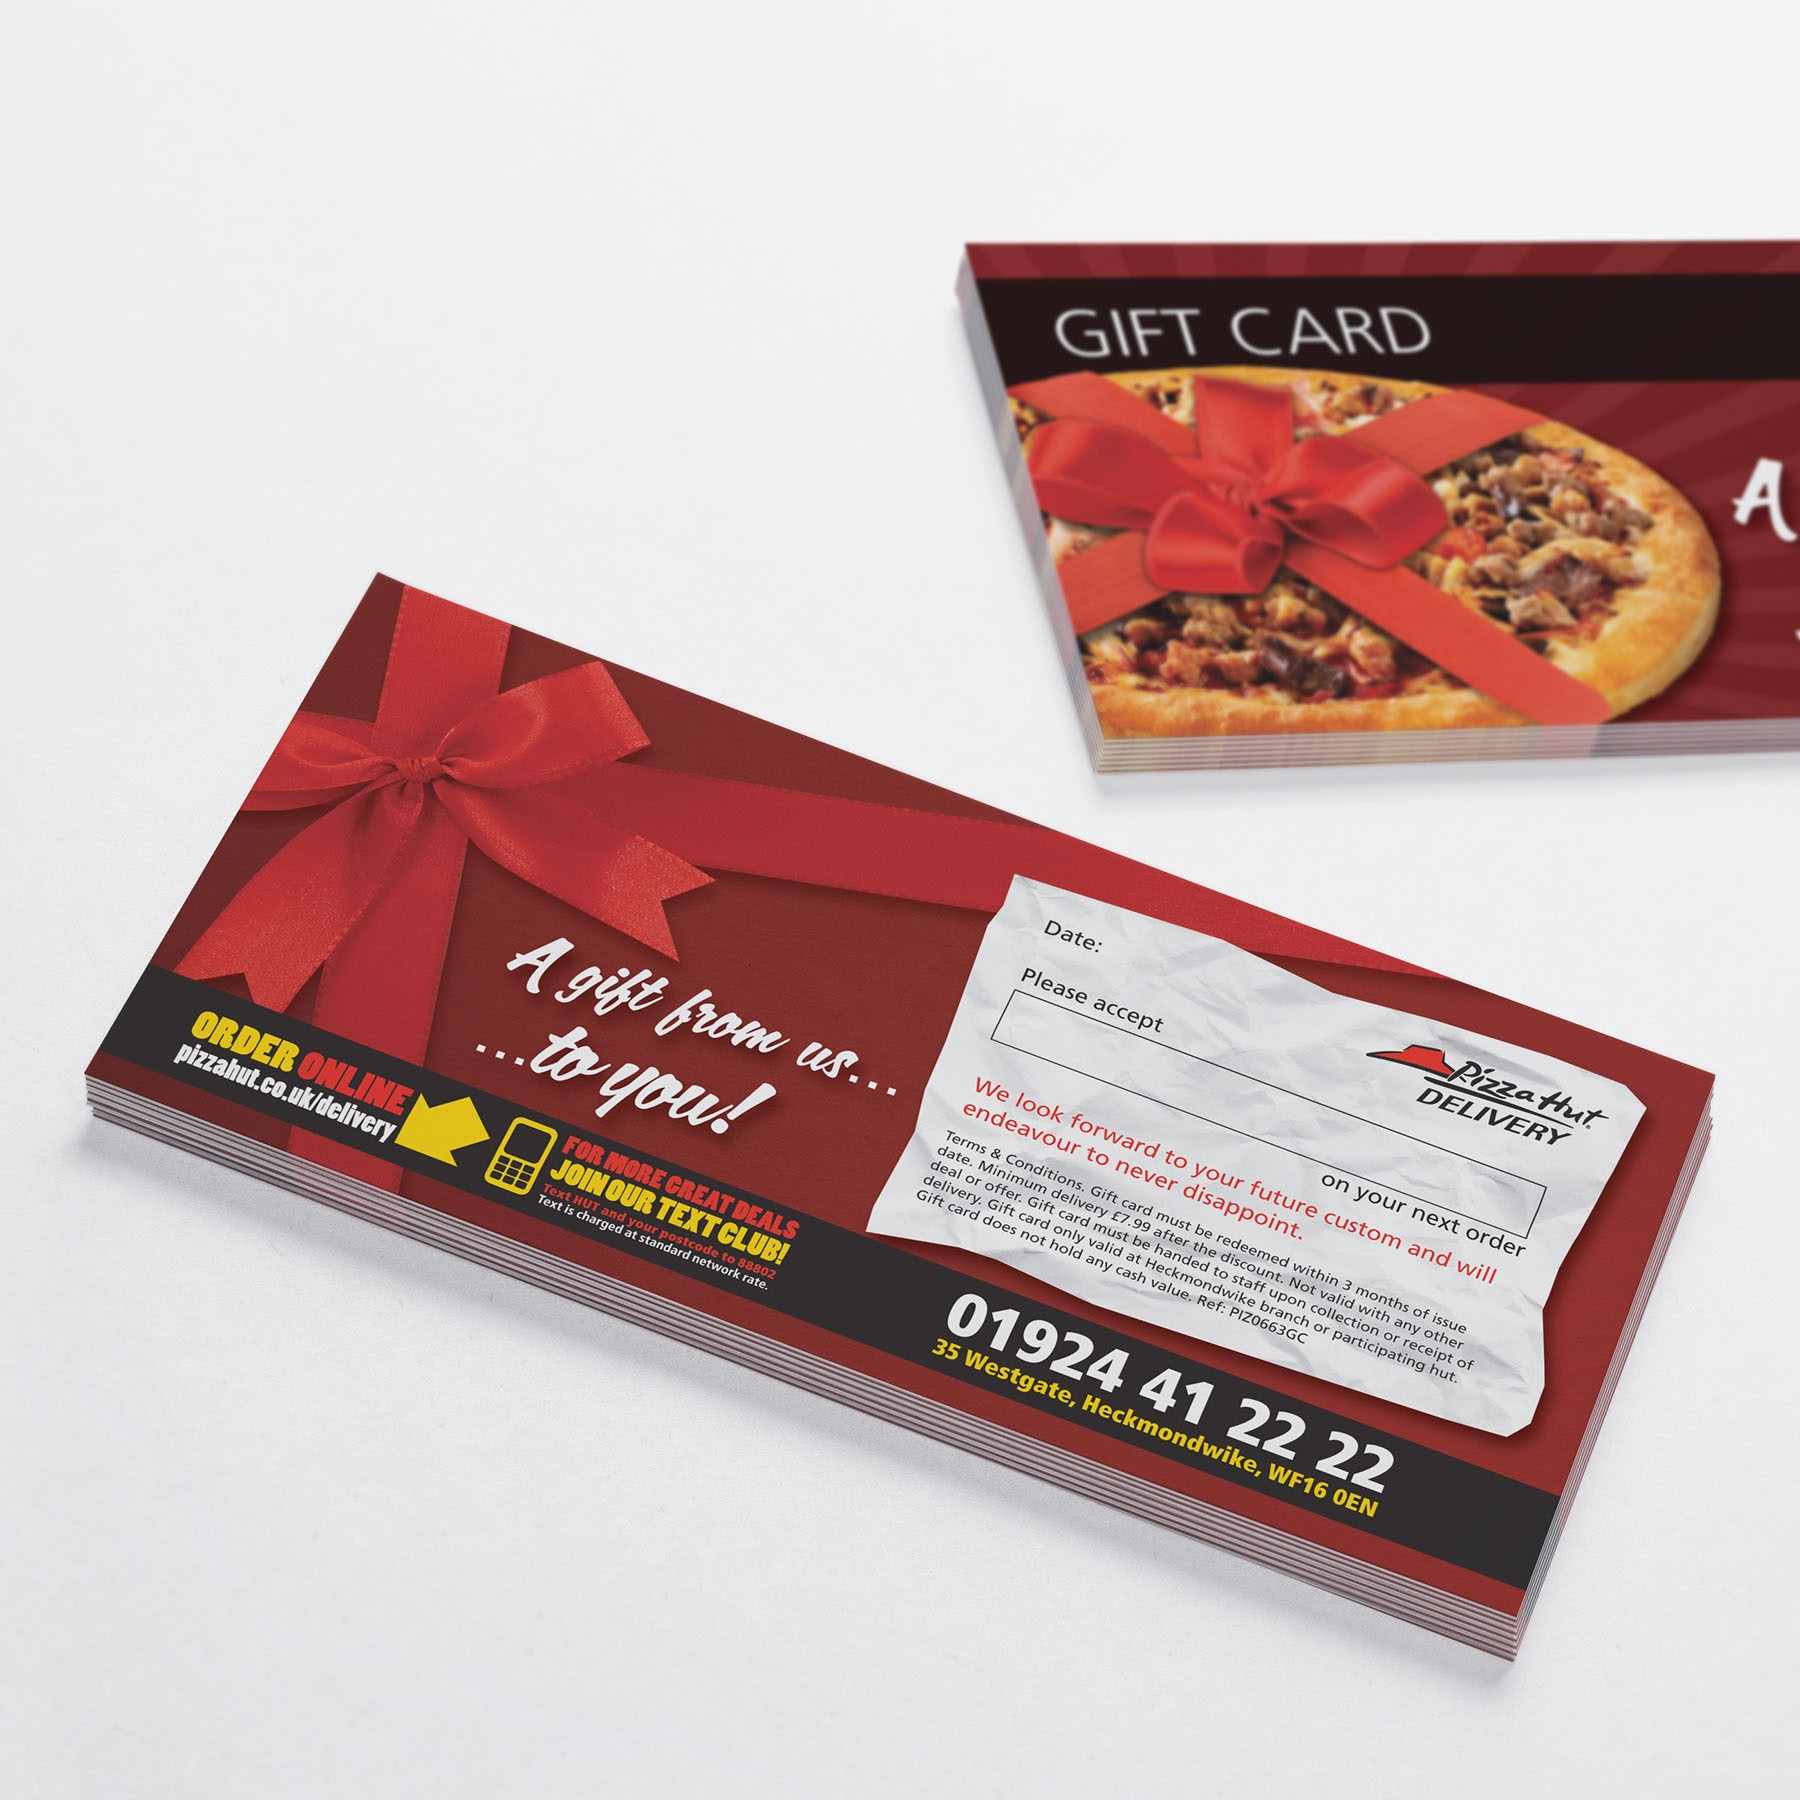 Active Pizza Hut Coupons and Deals